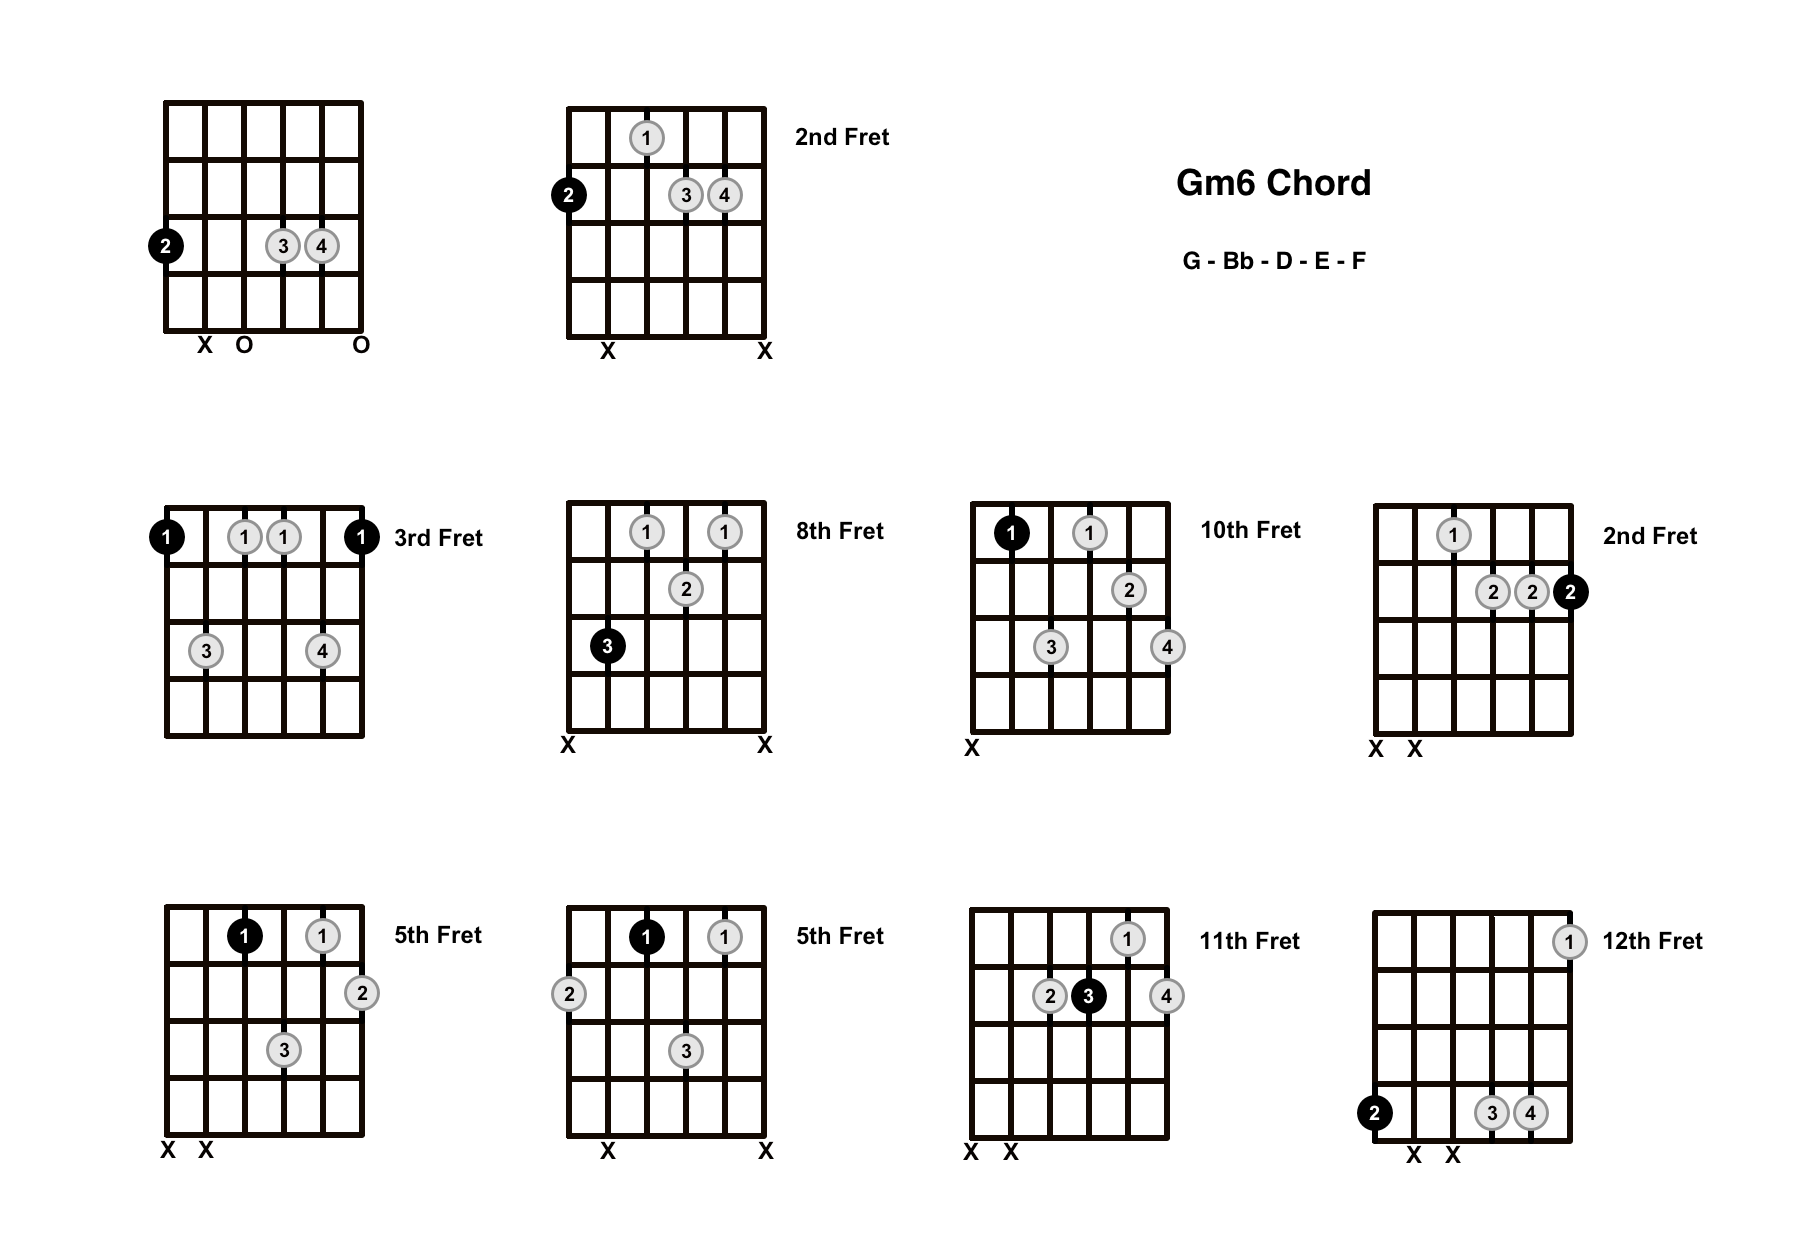 Gm6 Chord On The Guitar (G minor 6) – Diagrams, Finger Positions and Theory